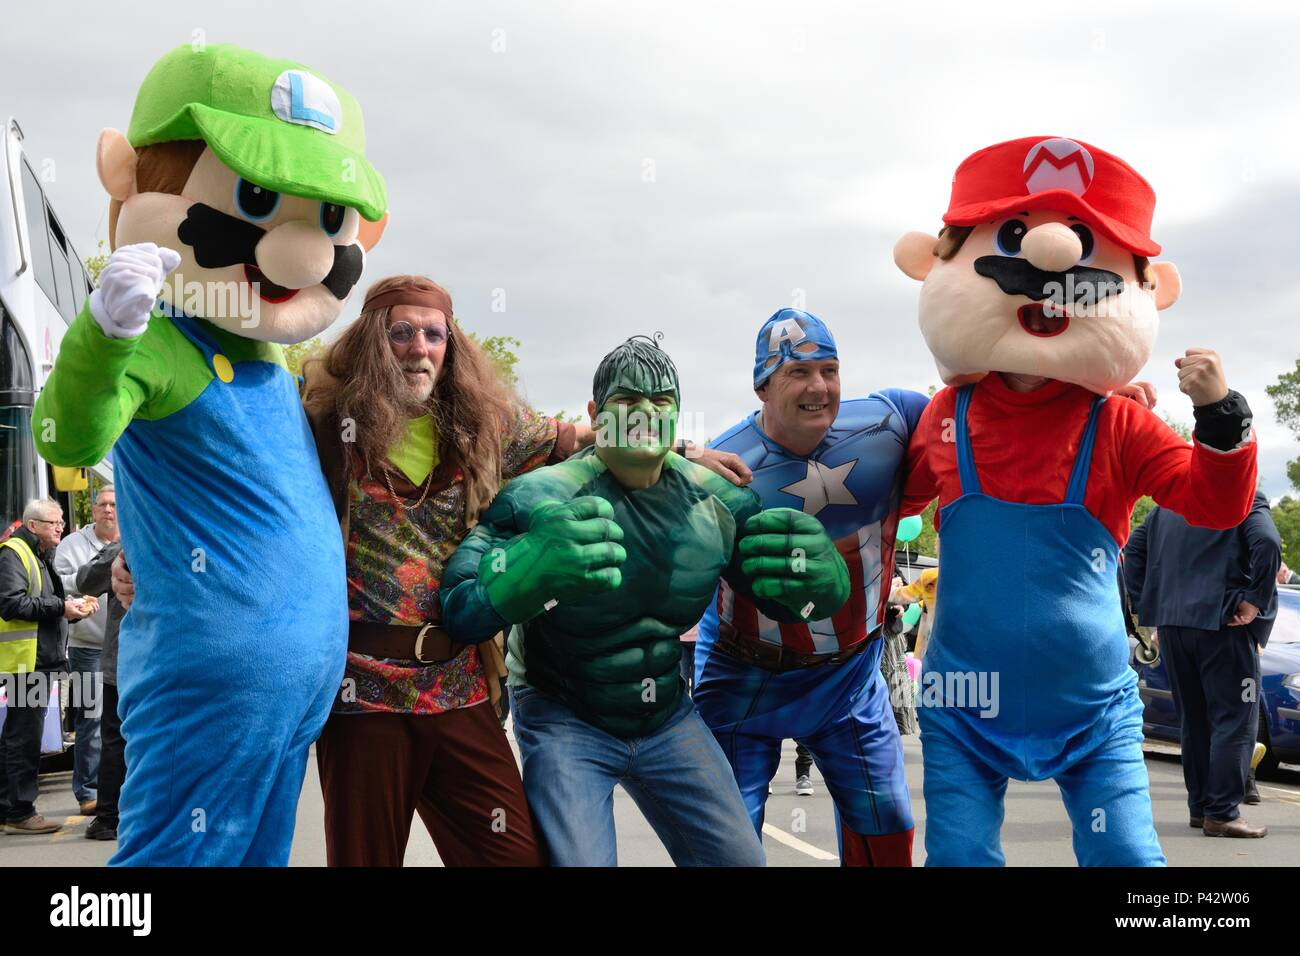 Glasgow, Scotland, UK. 20th, June, 2018. Taxi drivers dressed as cartoon characters at the annual Taxi run taking disabled children on a day trip to Troon in Ayrshire. - Stock Image